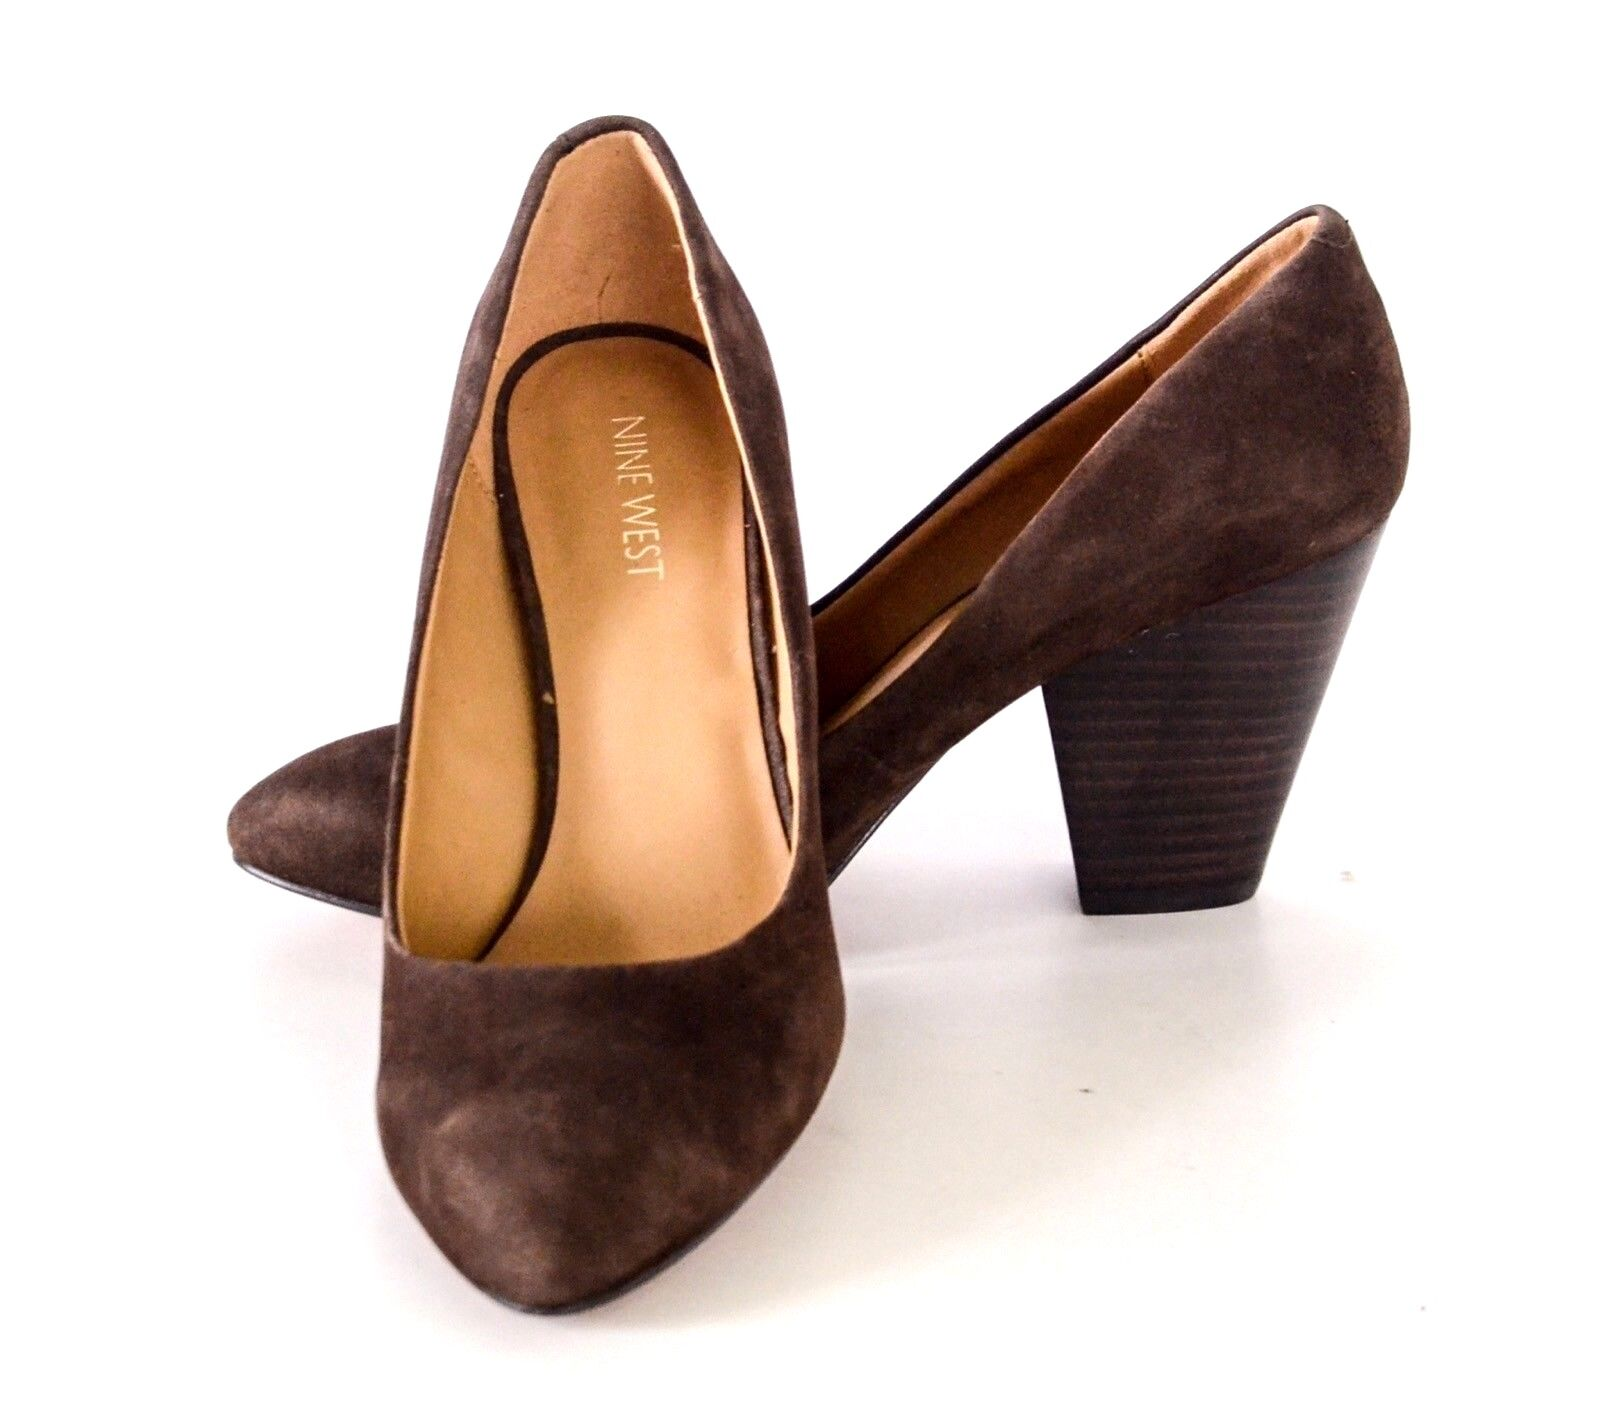 6682d769ba845 Nine Women's Drummer Brown Dress Pumps 7.5M Suede West ntkris2776 ...